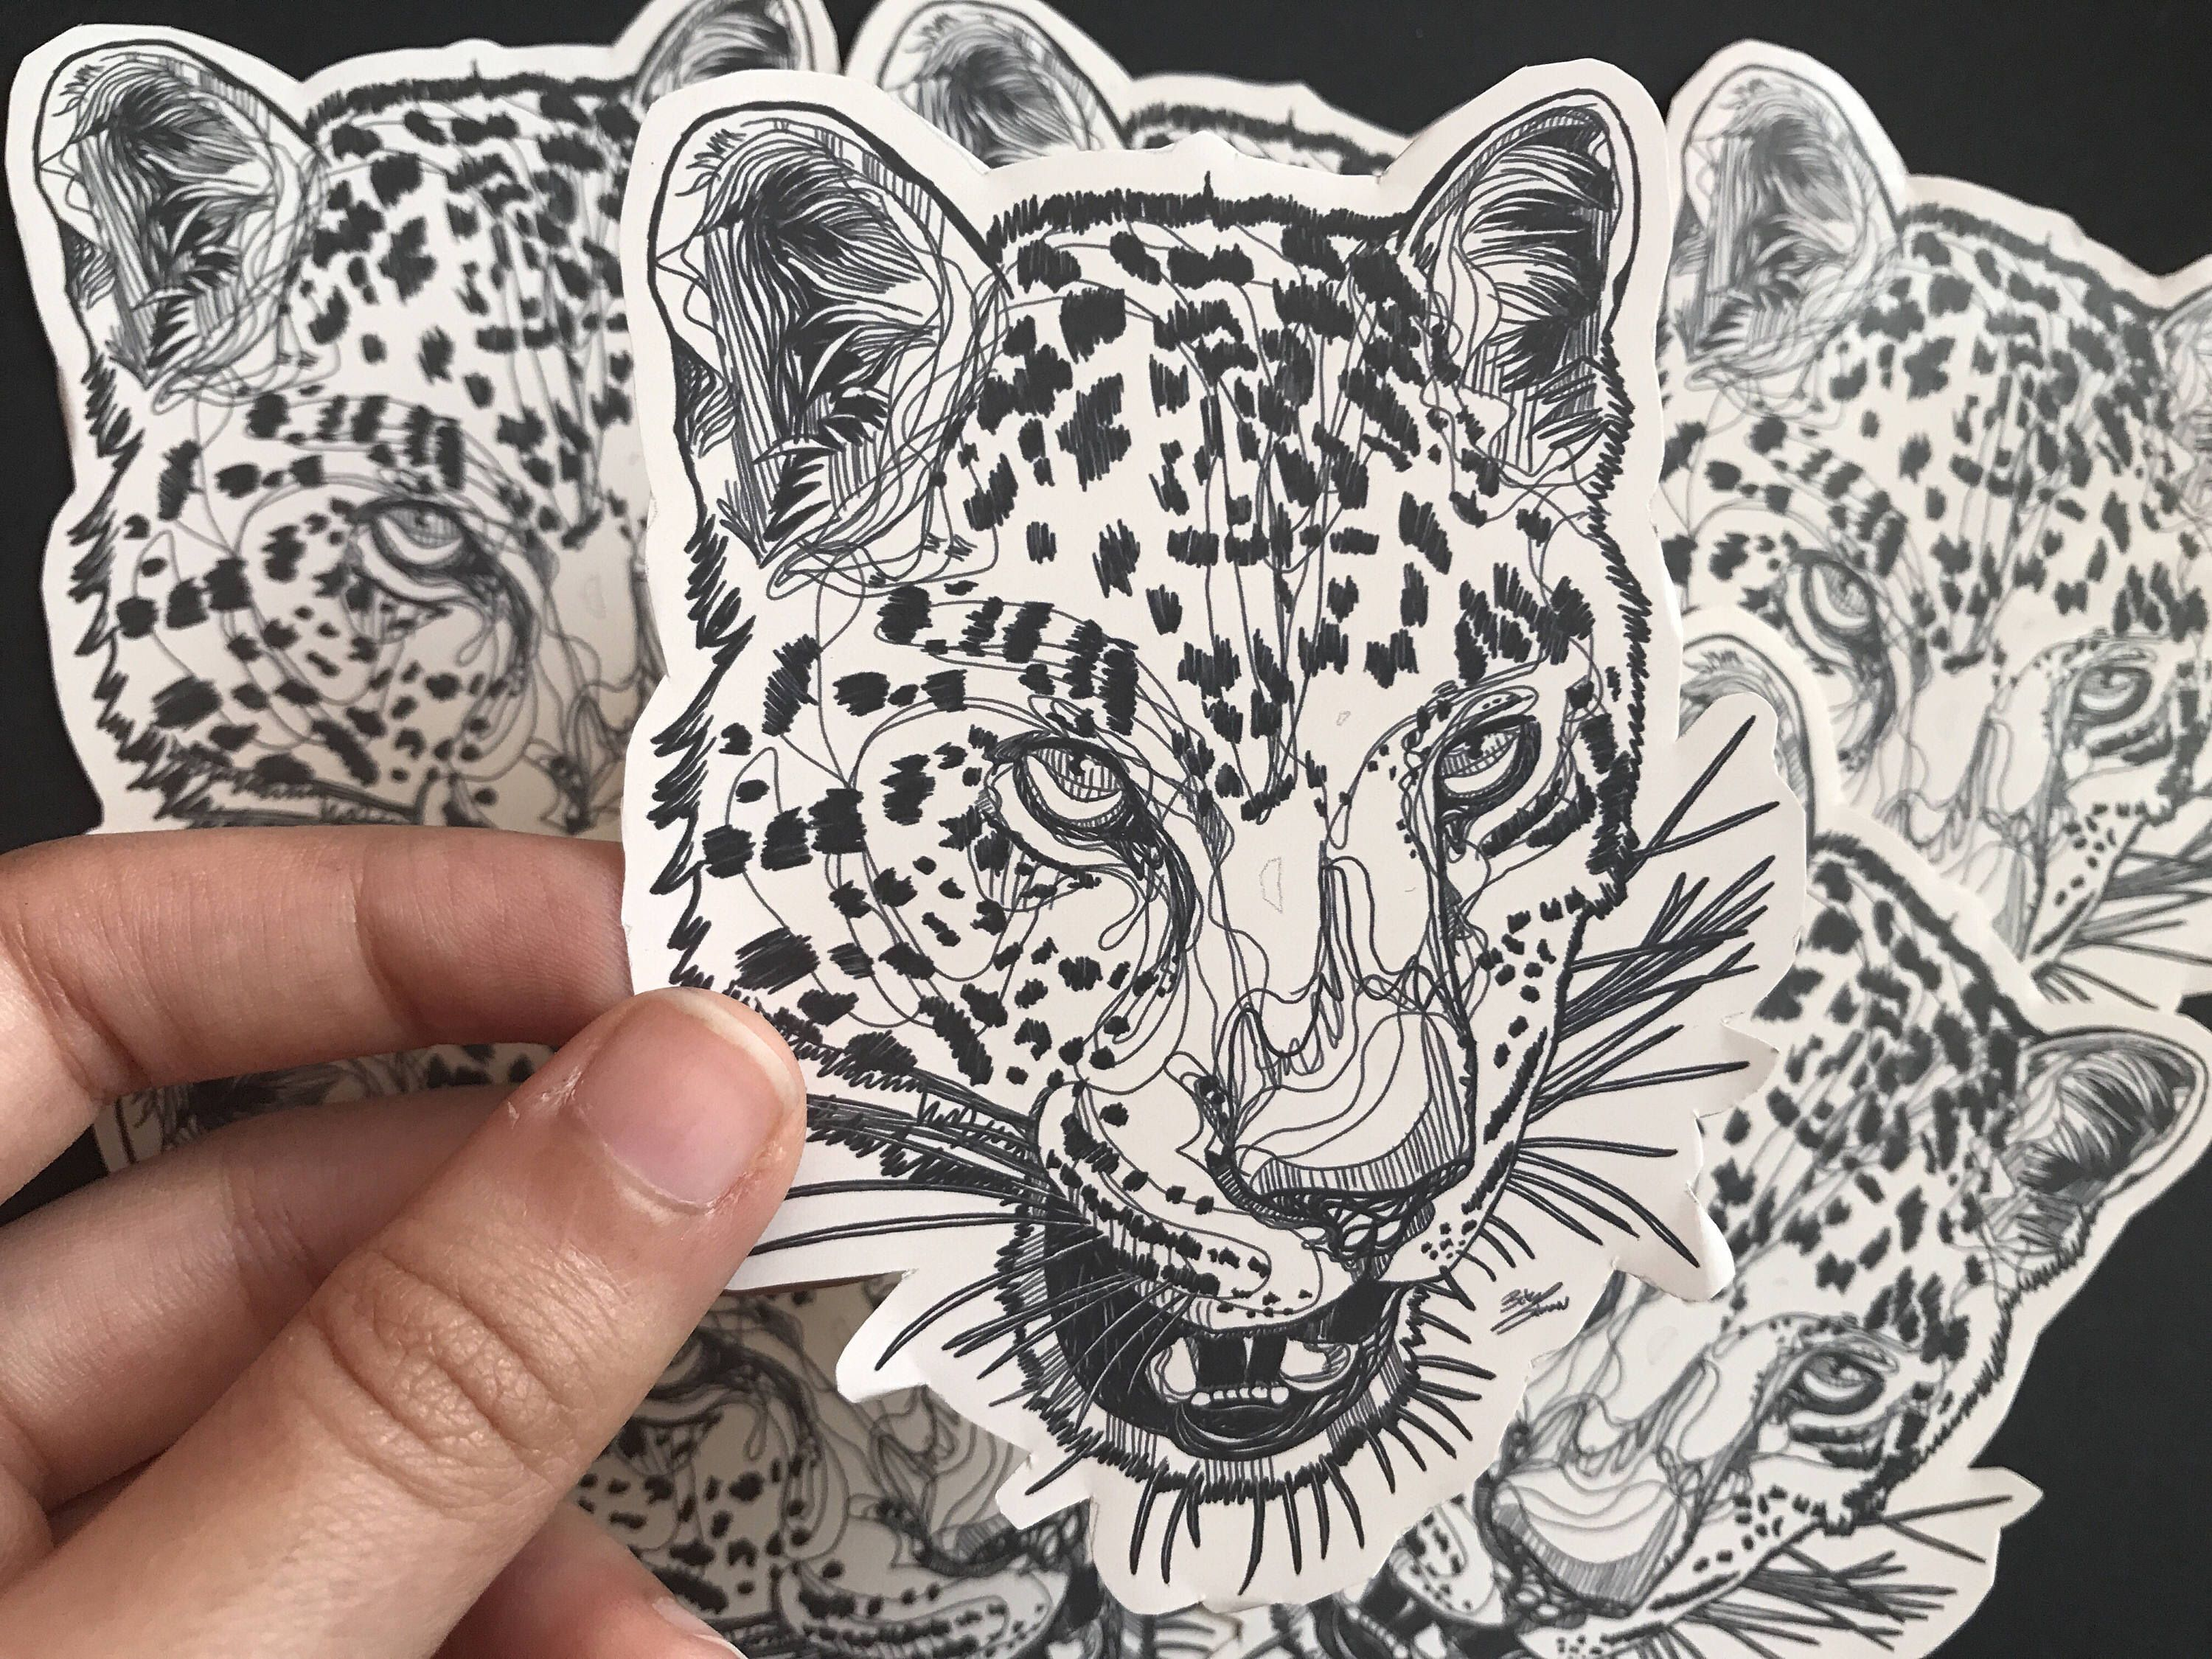 3000x2250 Leopard Sticker, Linedrawing, Laptop Decal, Notebook Sticker